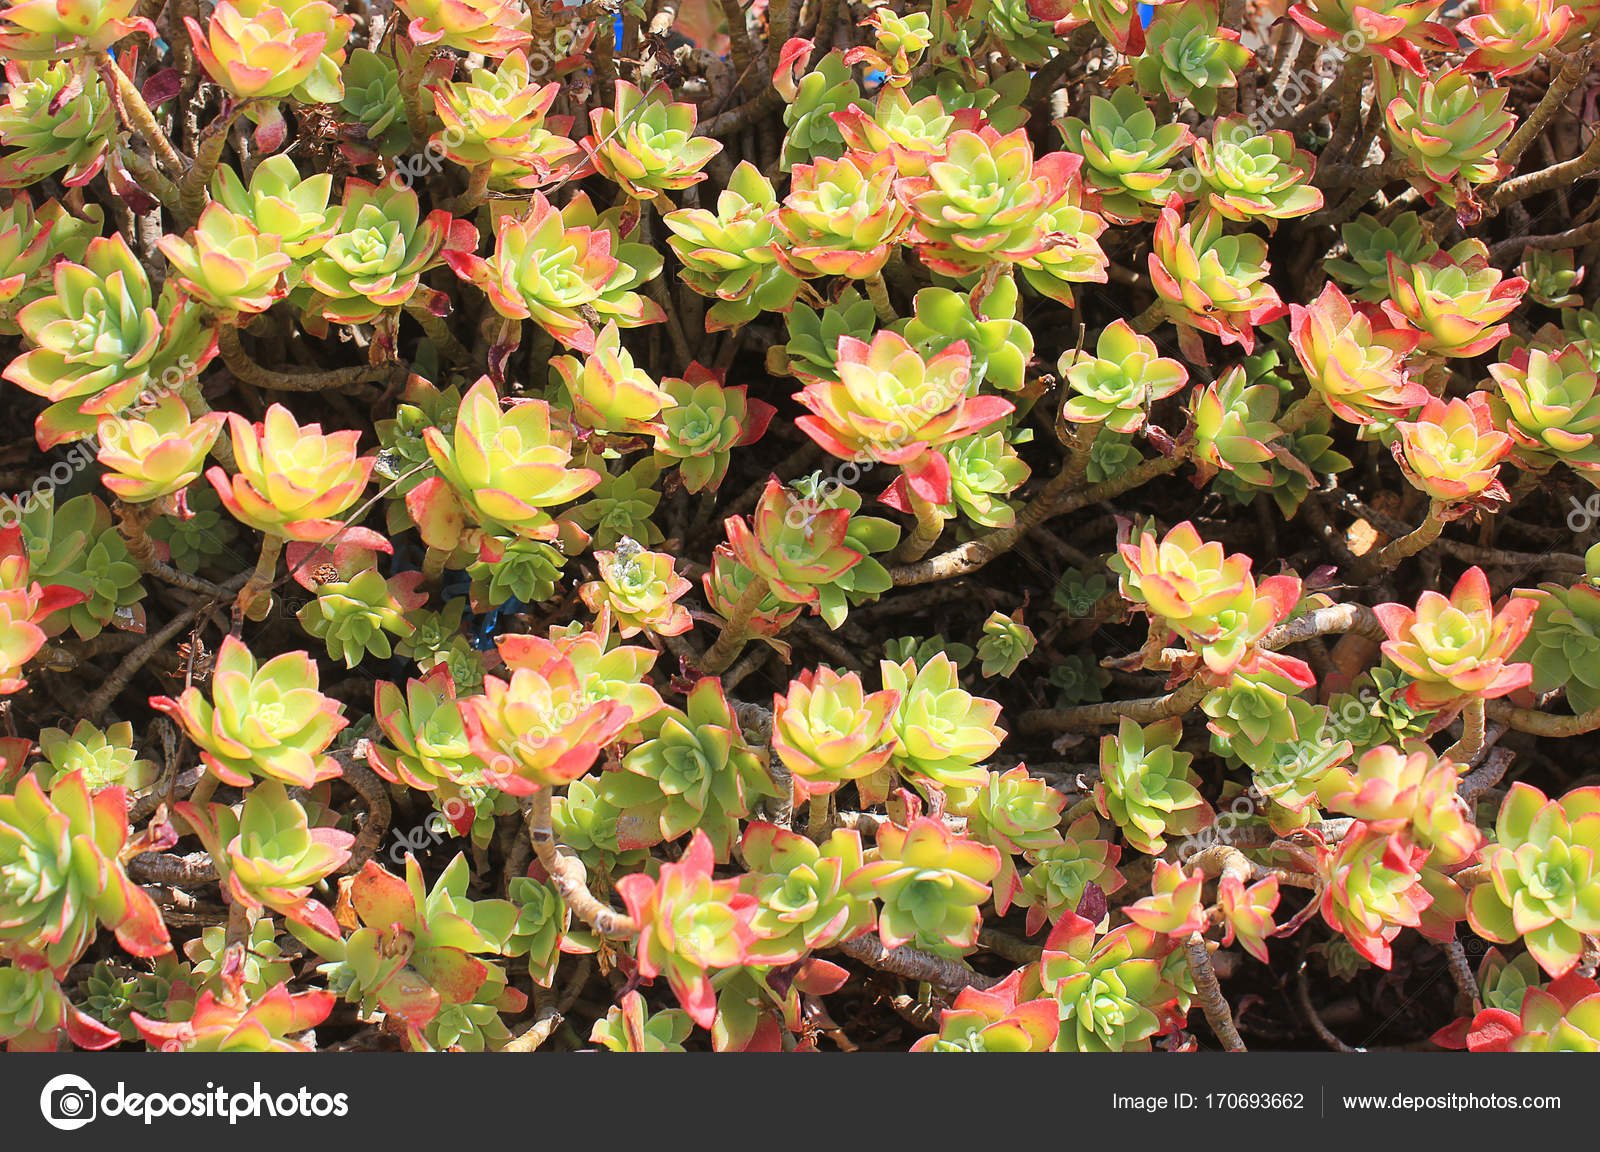 Flowers Of A Succulent Plant Stock Photo Piknik67 170693662